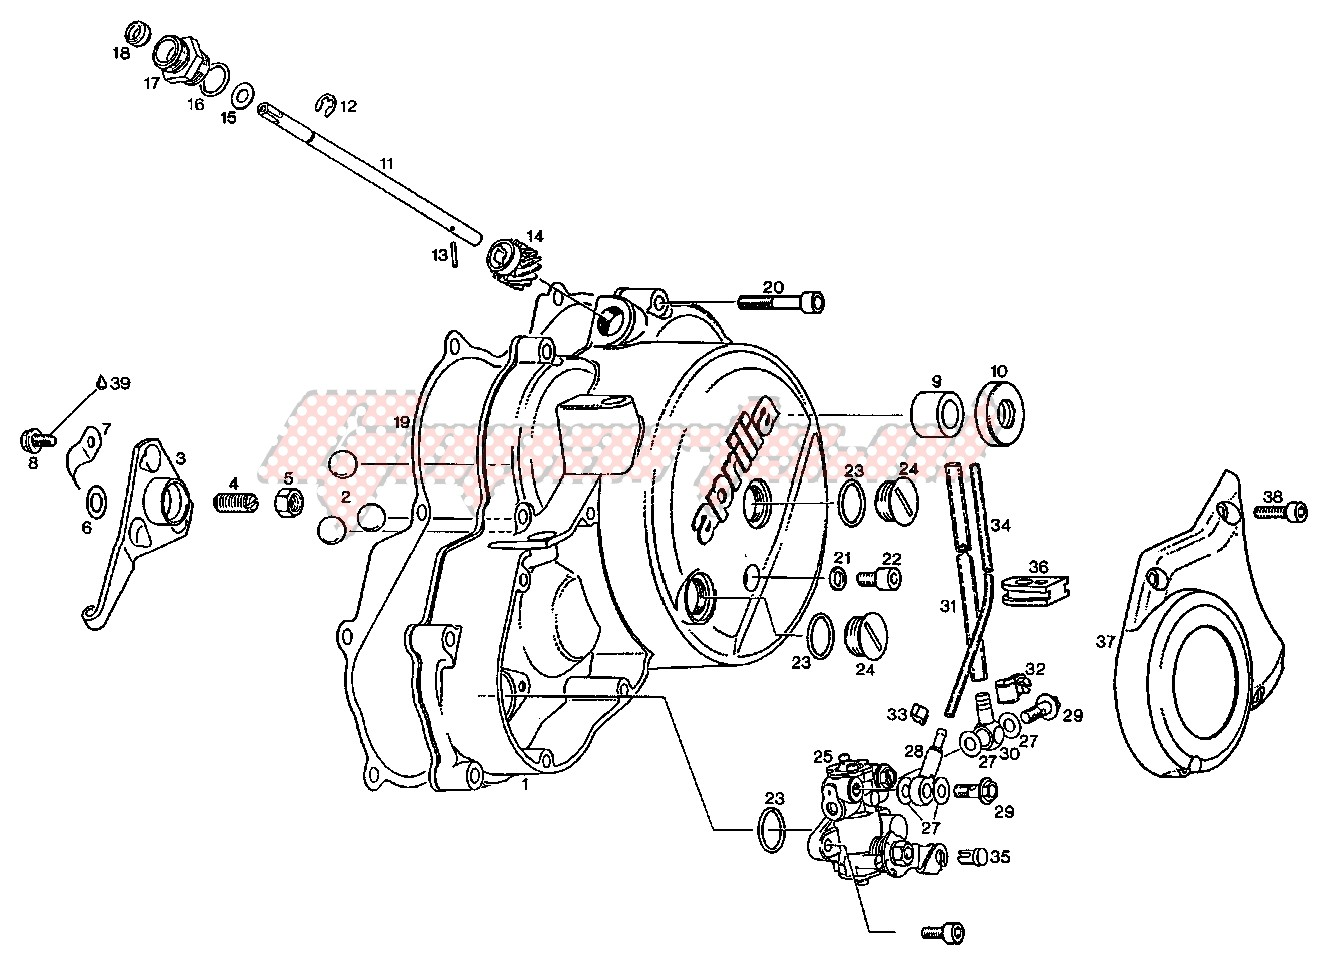 Engine-Clutch cover - Oil pump